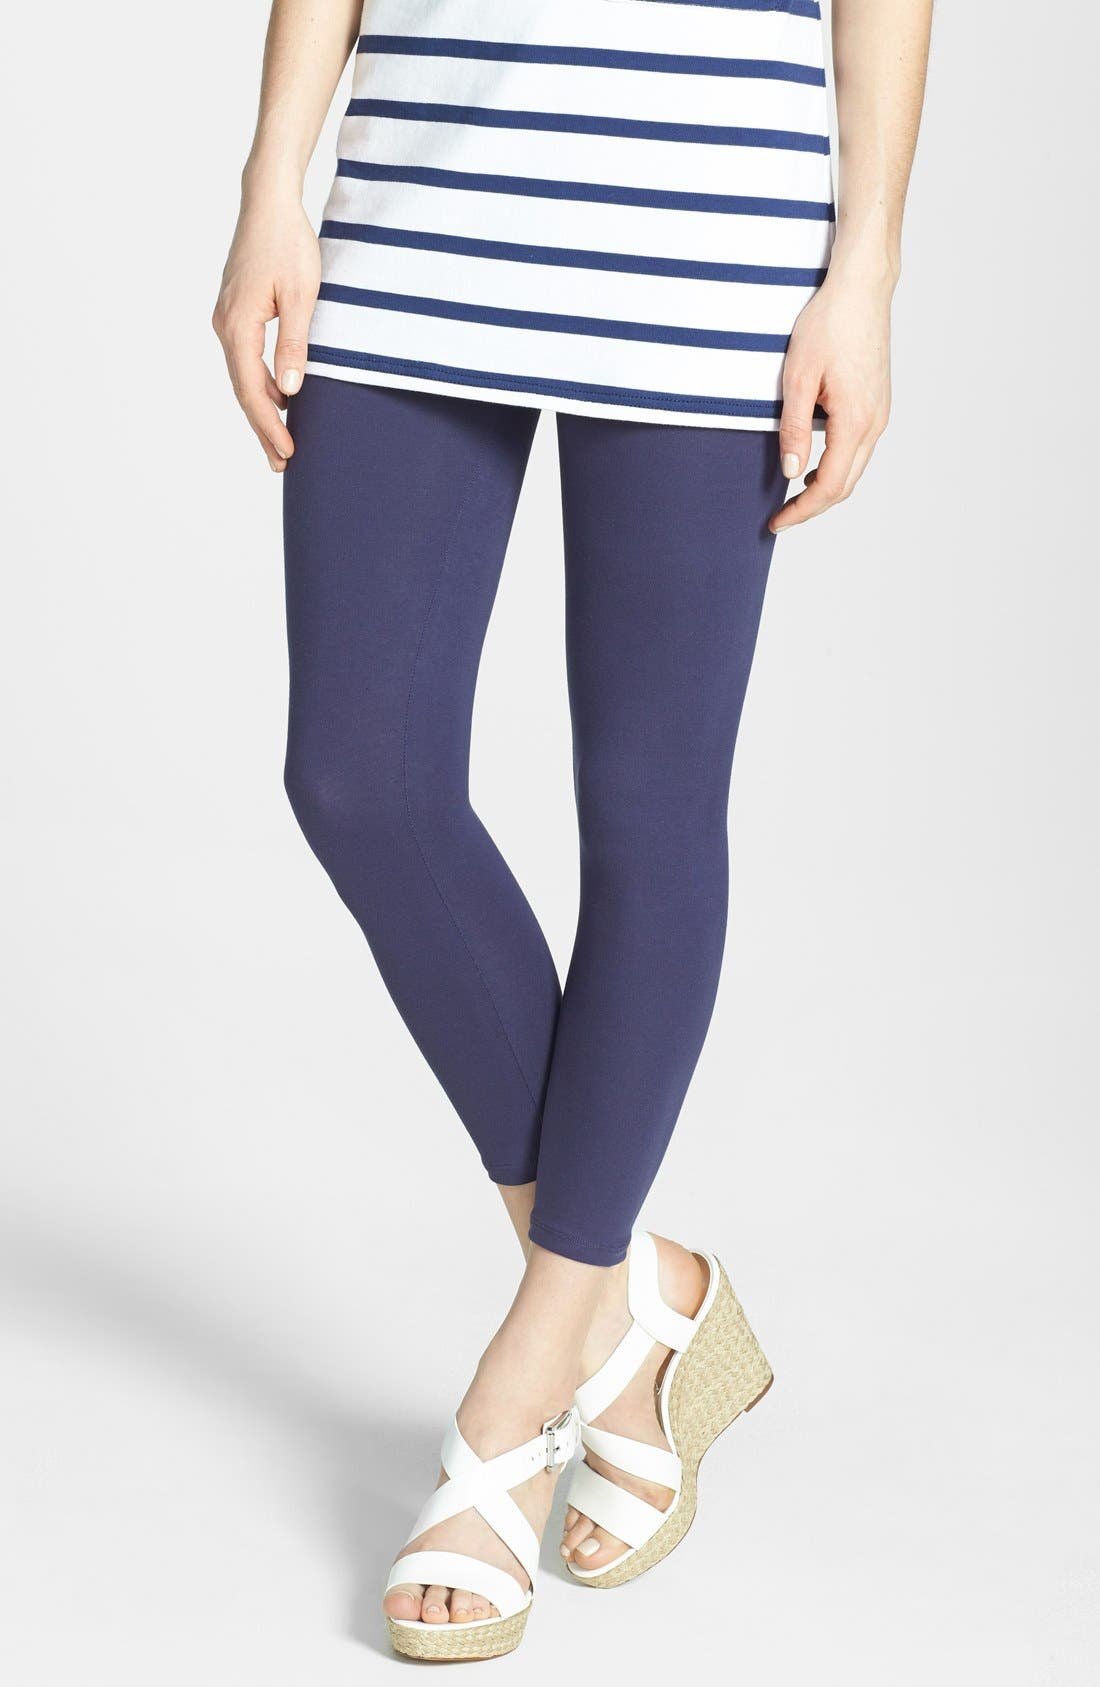 Alternate Image 1 Selected - Yummie by Heather Thomson 'Nora' Control Top Skimmer Leggings (Online Only)